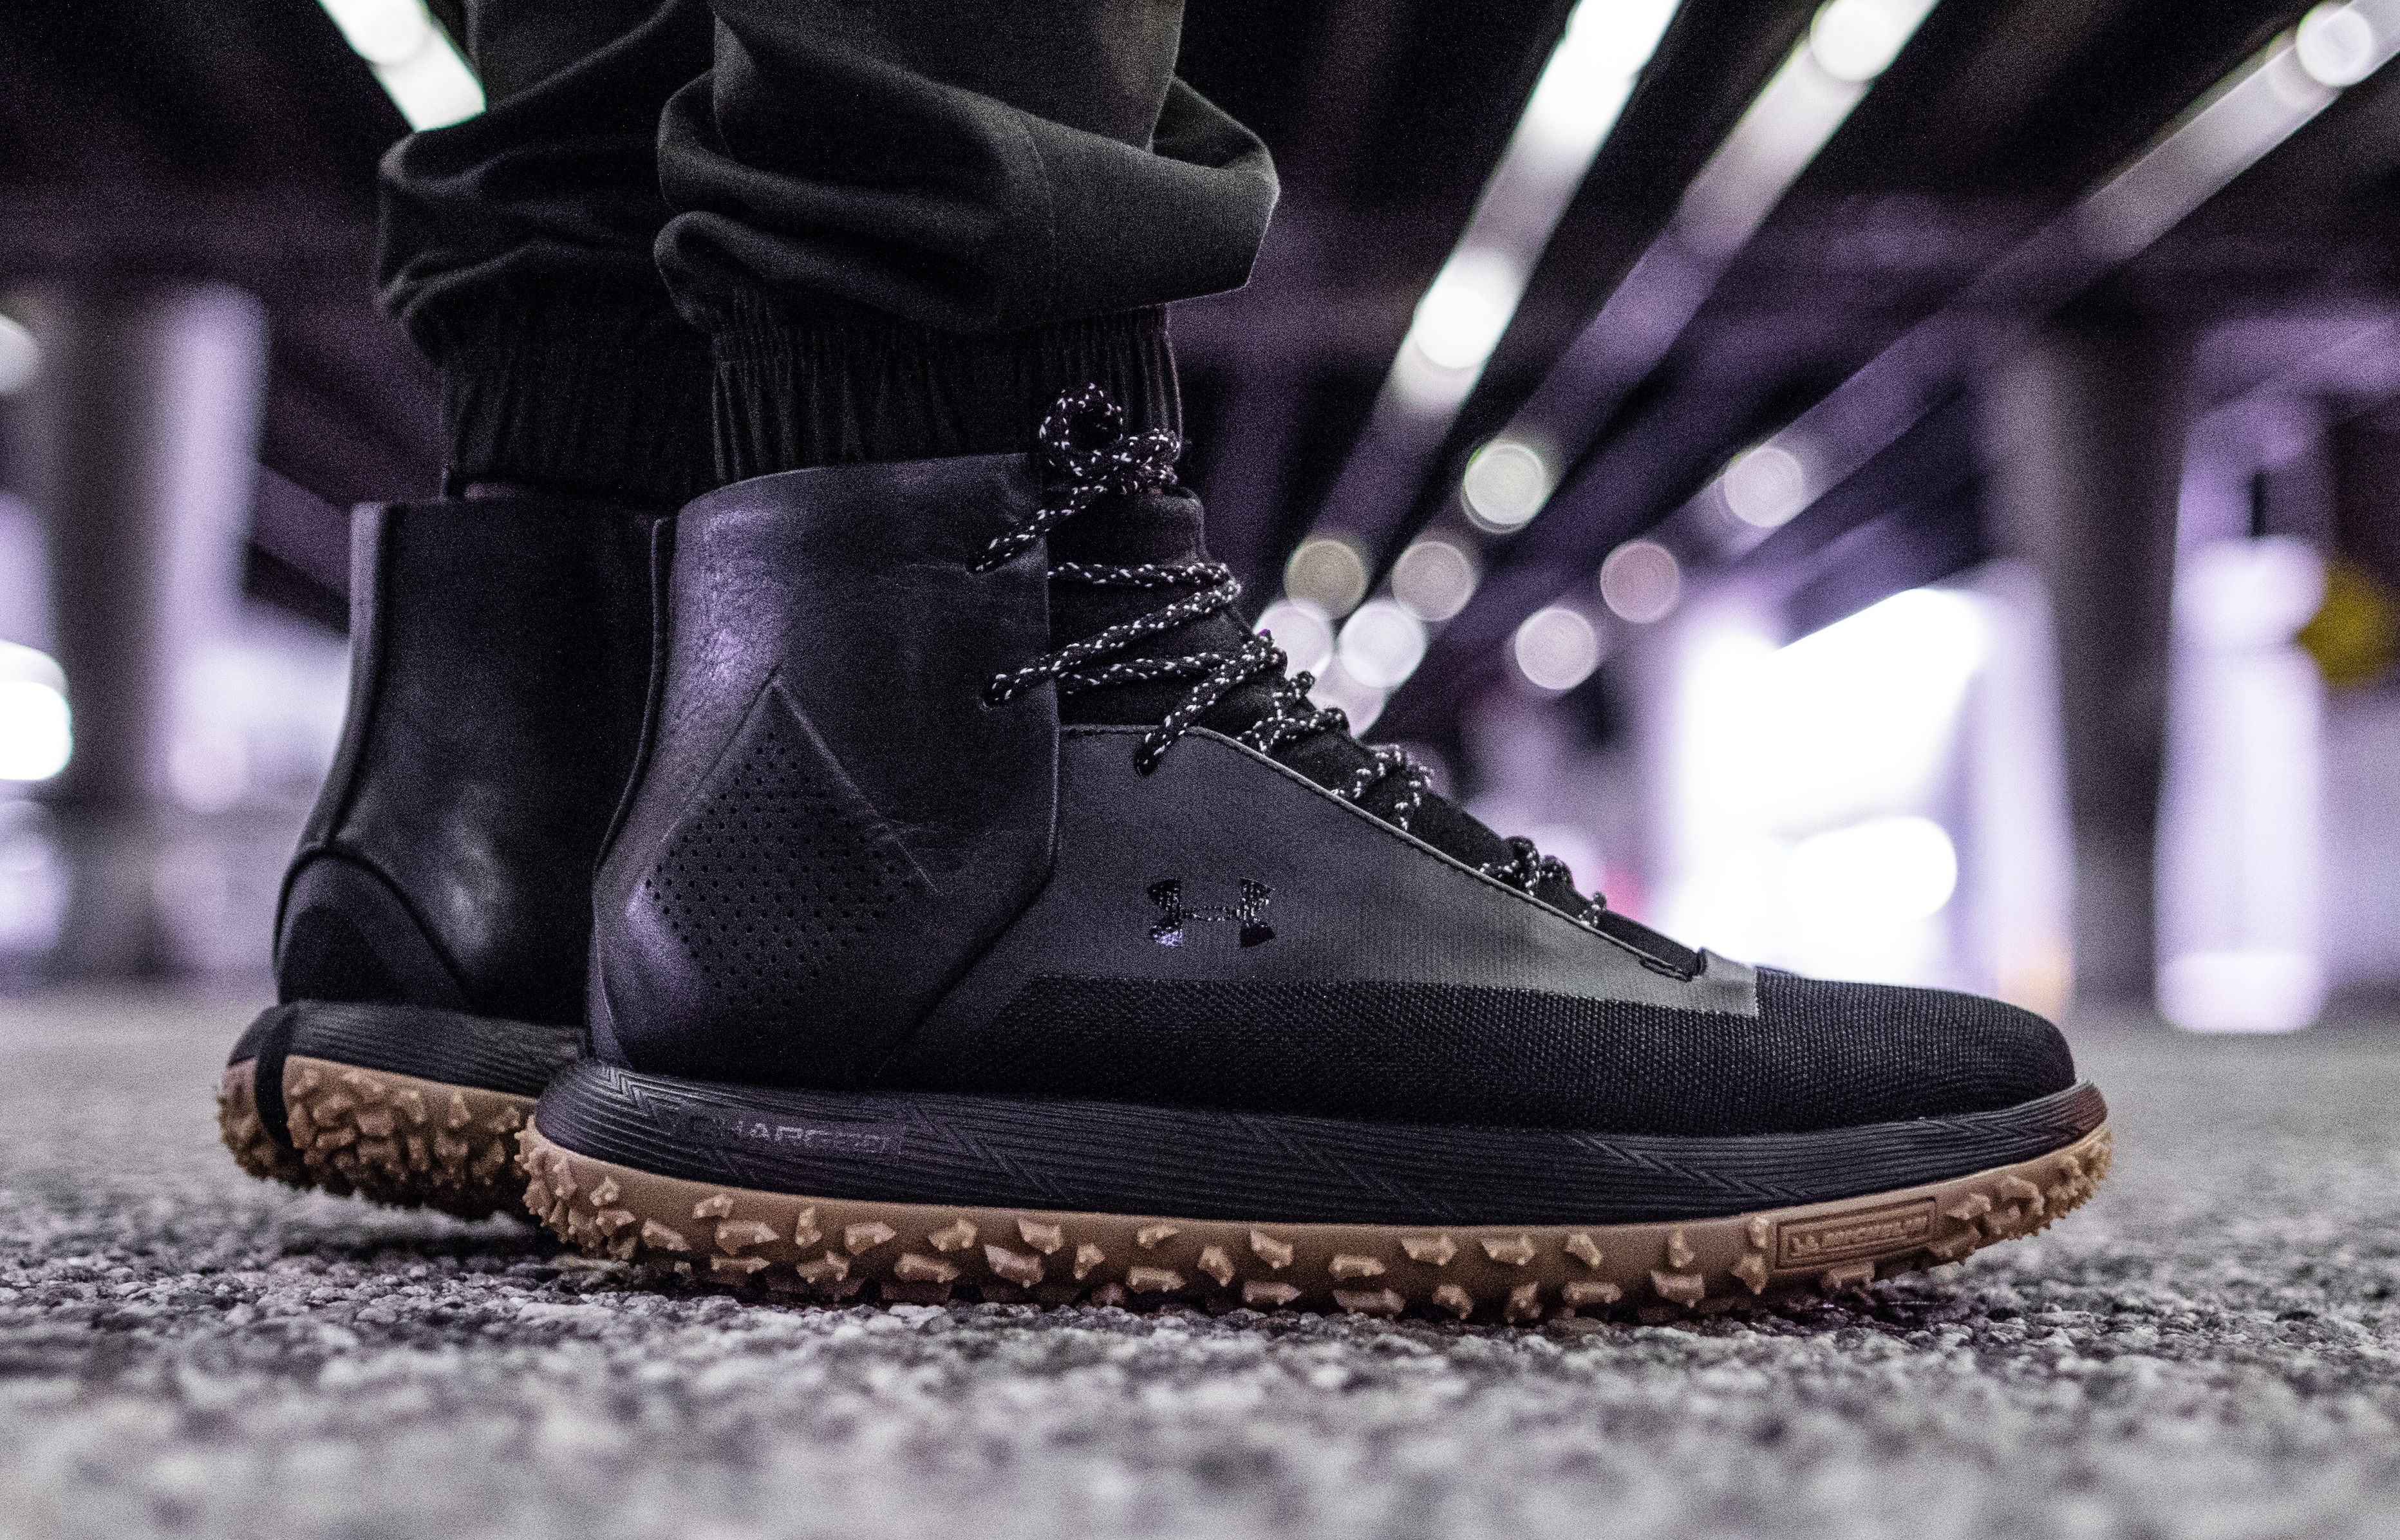 Under Armour Fat Tire Onda Mid Sole Collector